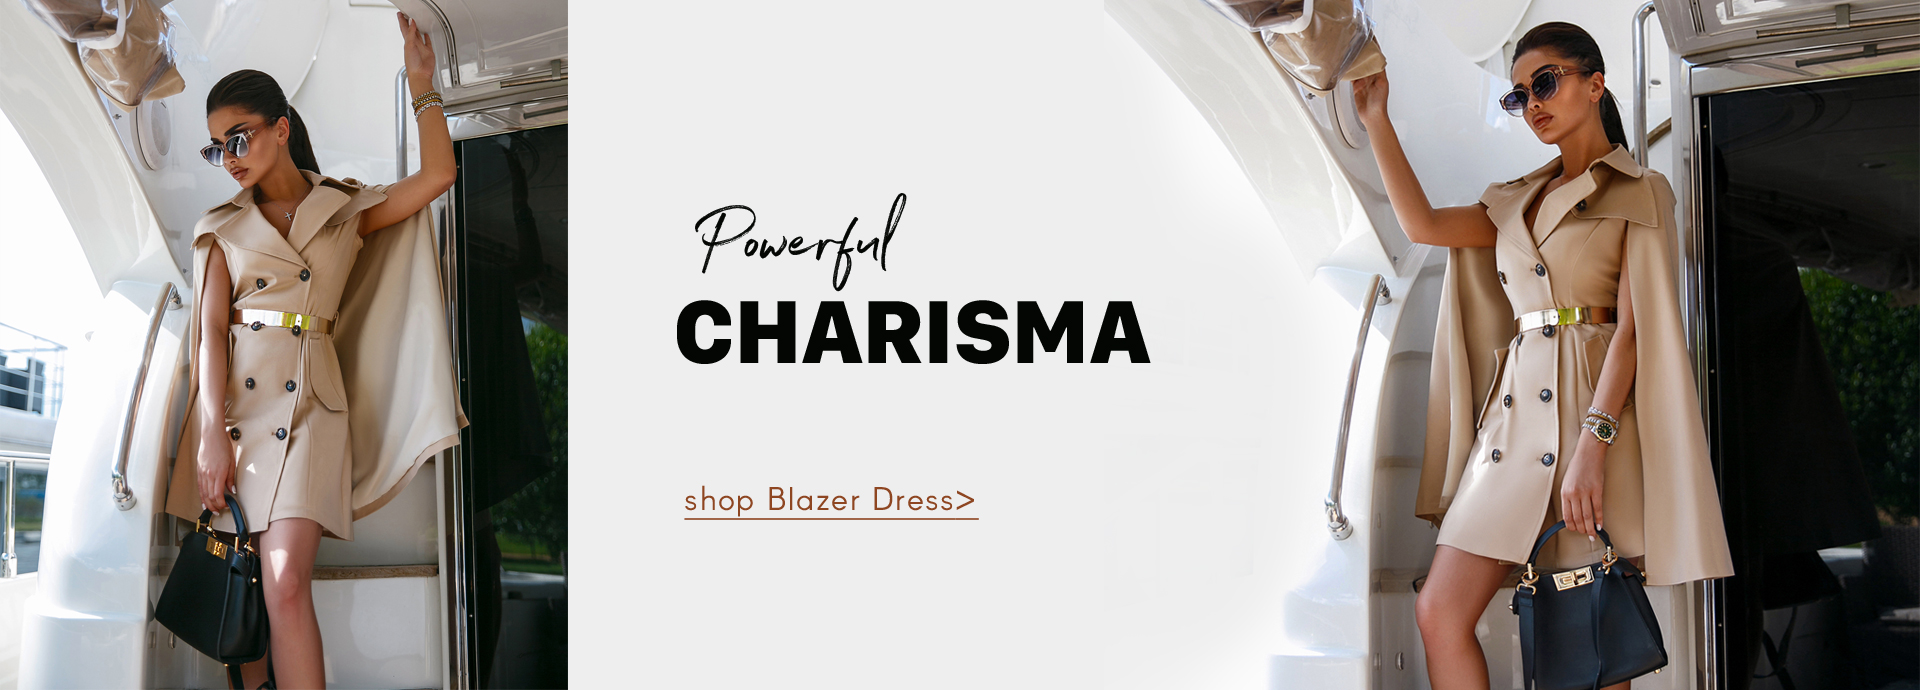 Powerful Charisma